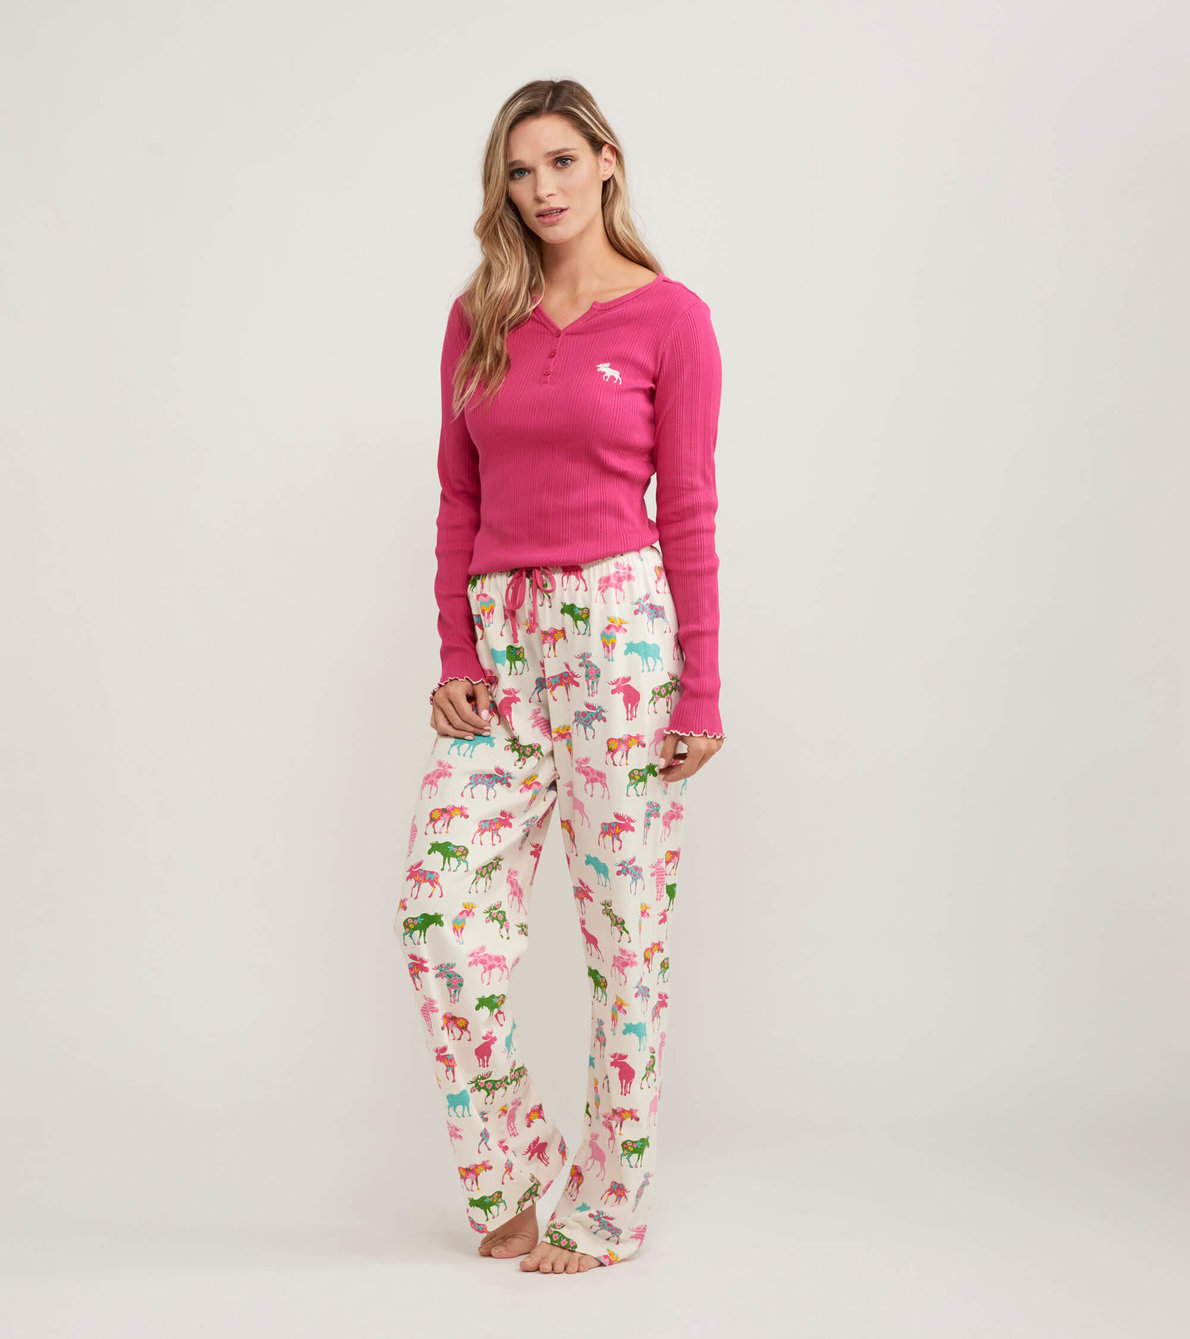 View larger image of Patterned Moose Women's Tee and Pants Pajama Separates